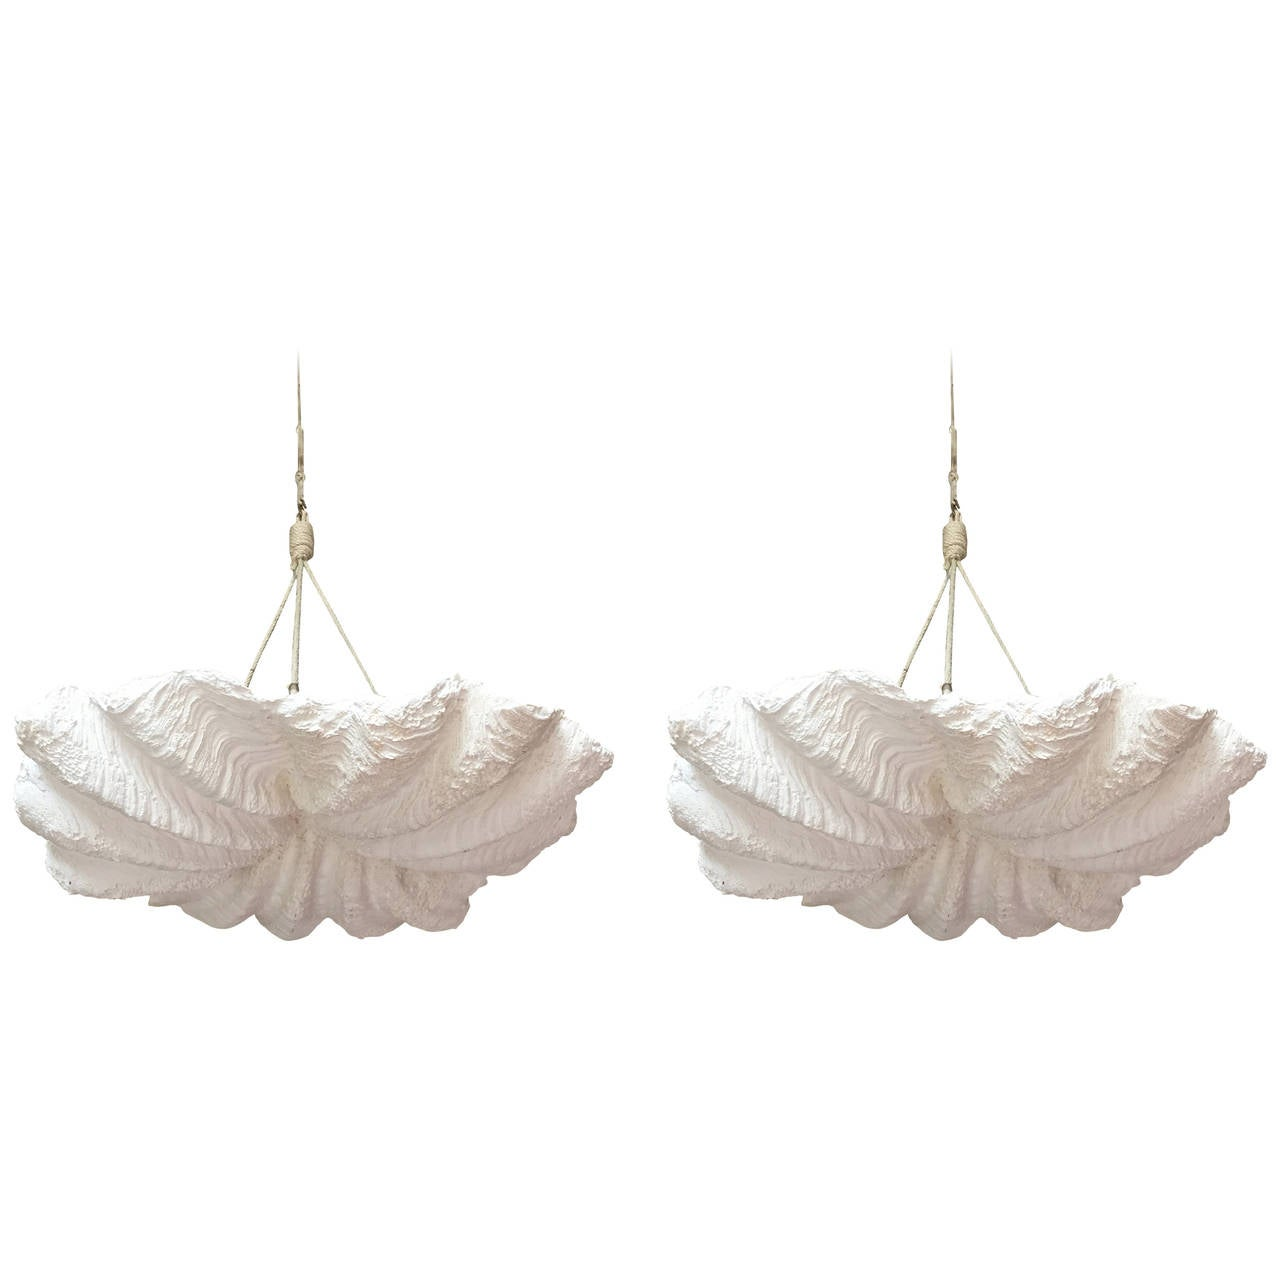 Pair Of Plaster Shell Chandeliers At 1stdibs